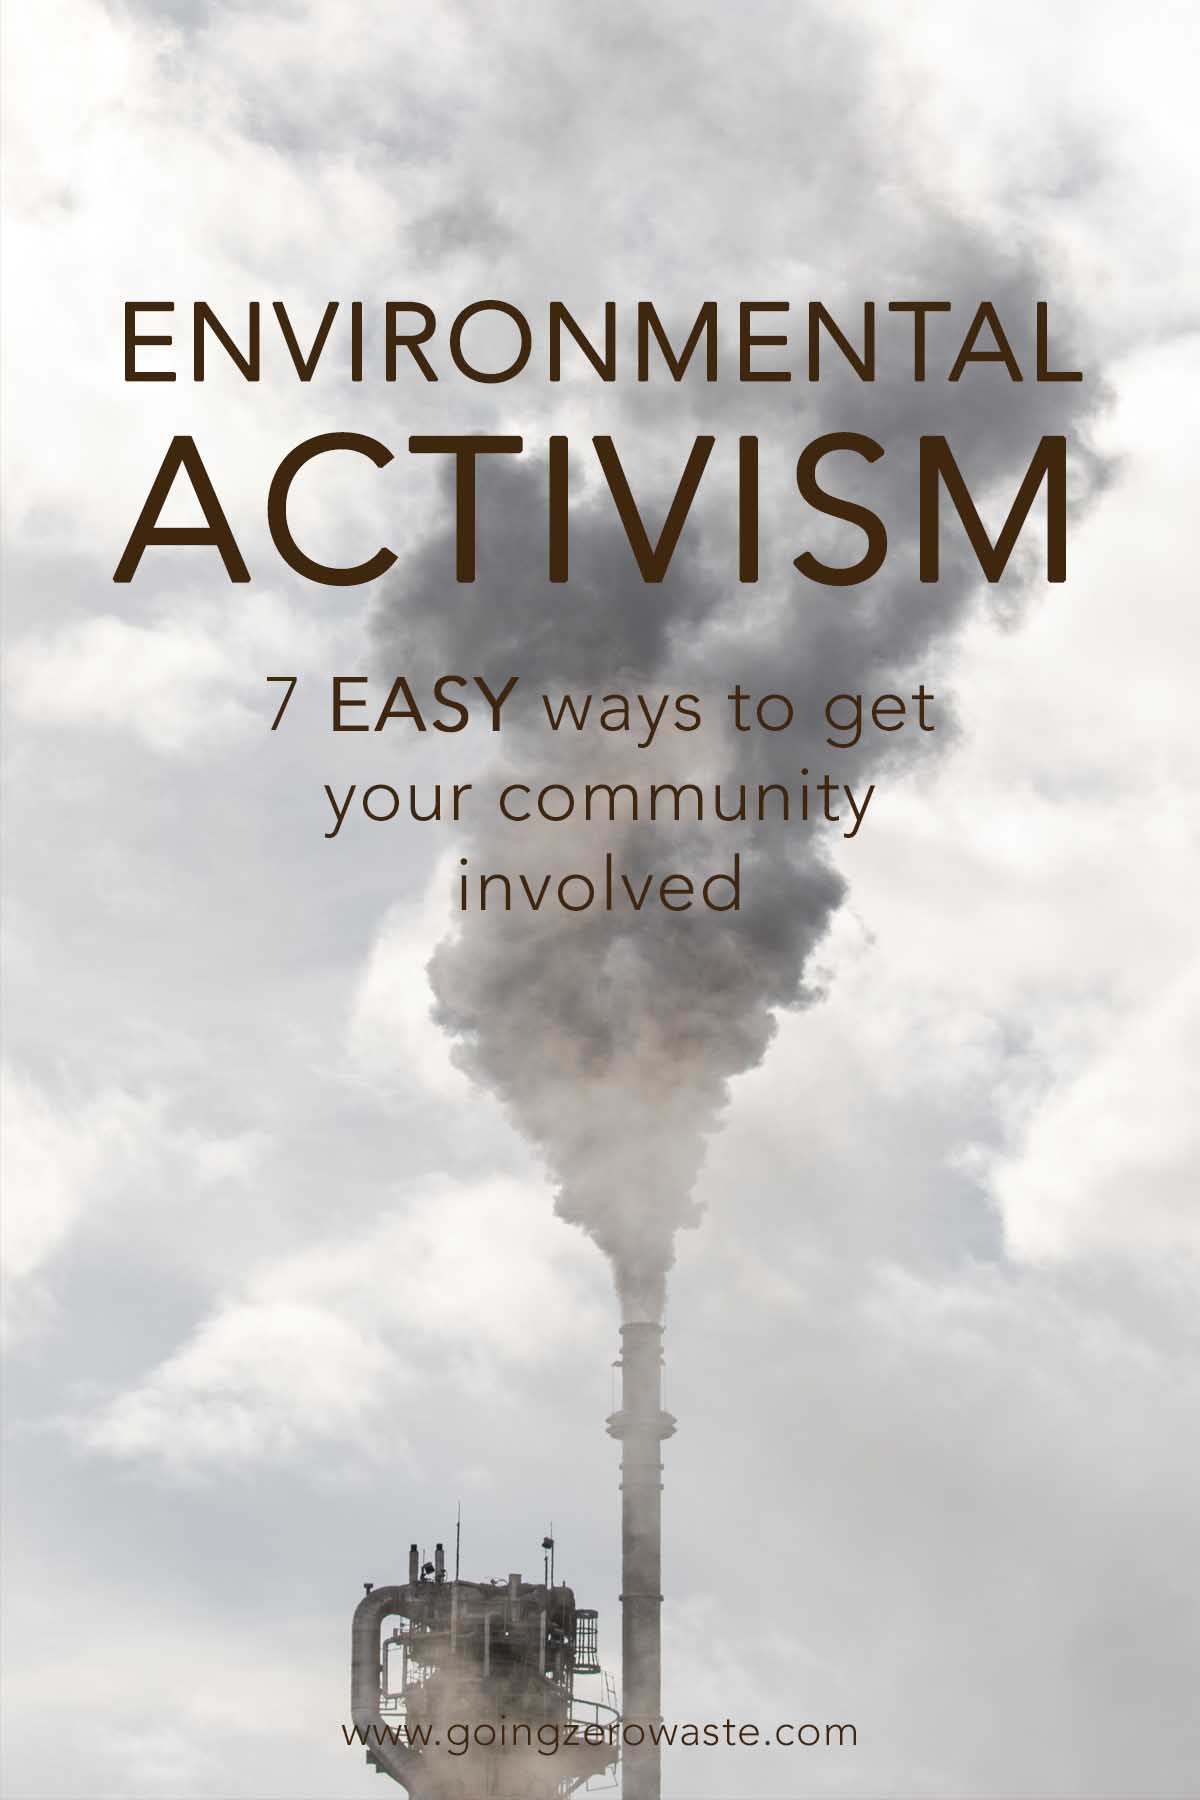 Environmental Activism: 7 Easy Ways to get your community involved from www.goingzerowaste.com #activism #environment #getinvolved #plasticfree #zerowaste #sustainable #gogreen #helpothers